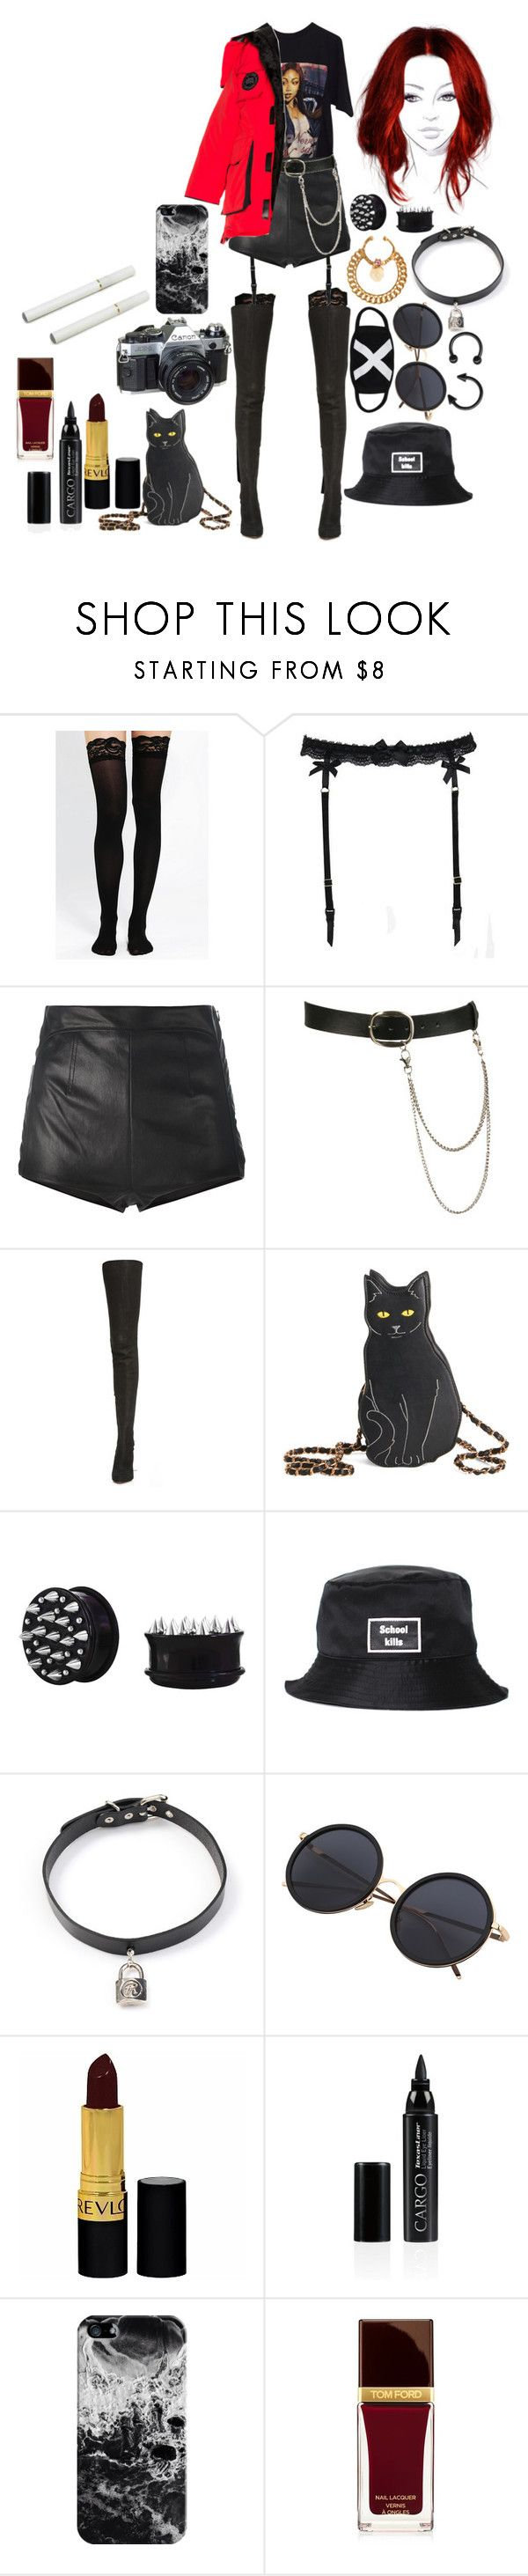 """""""Lucky Girl"""" by cherrysick ❤ liked on Polyvore featuring Reger by Janet Reger, La Perla, Wet Seal, Maison Margiela, Alice + Olivia, VFiles, Hyein Seo, American Eagle Outfitters, Revlon and CARGO"""